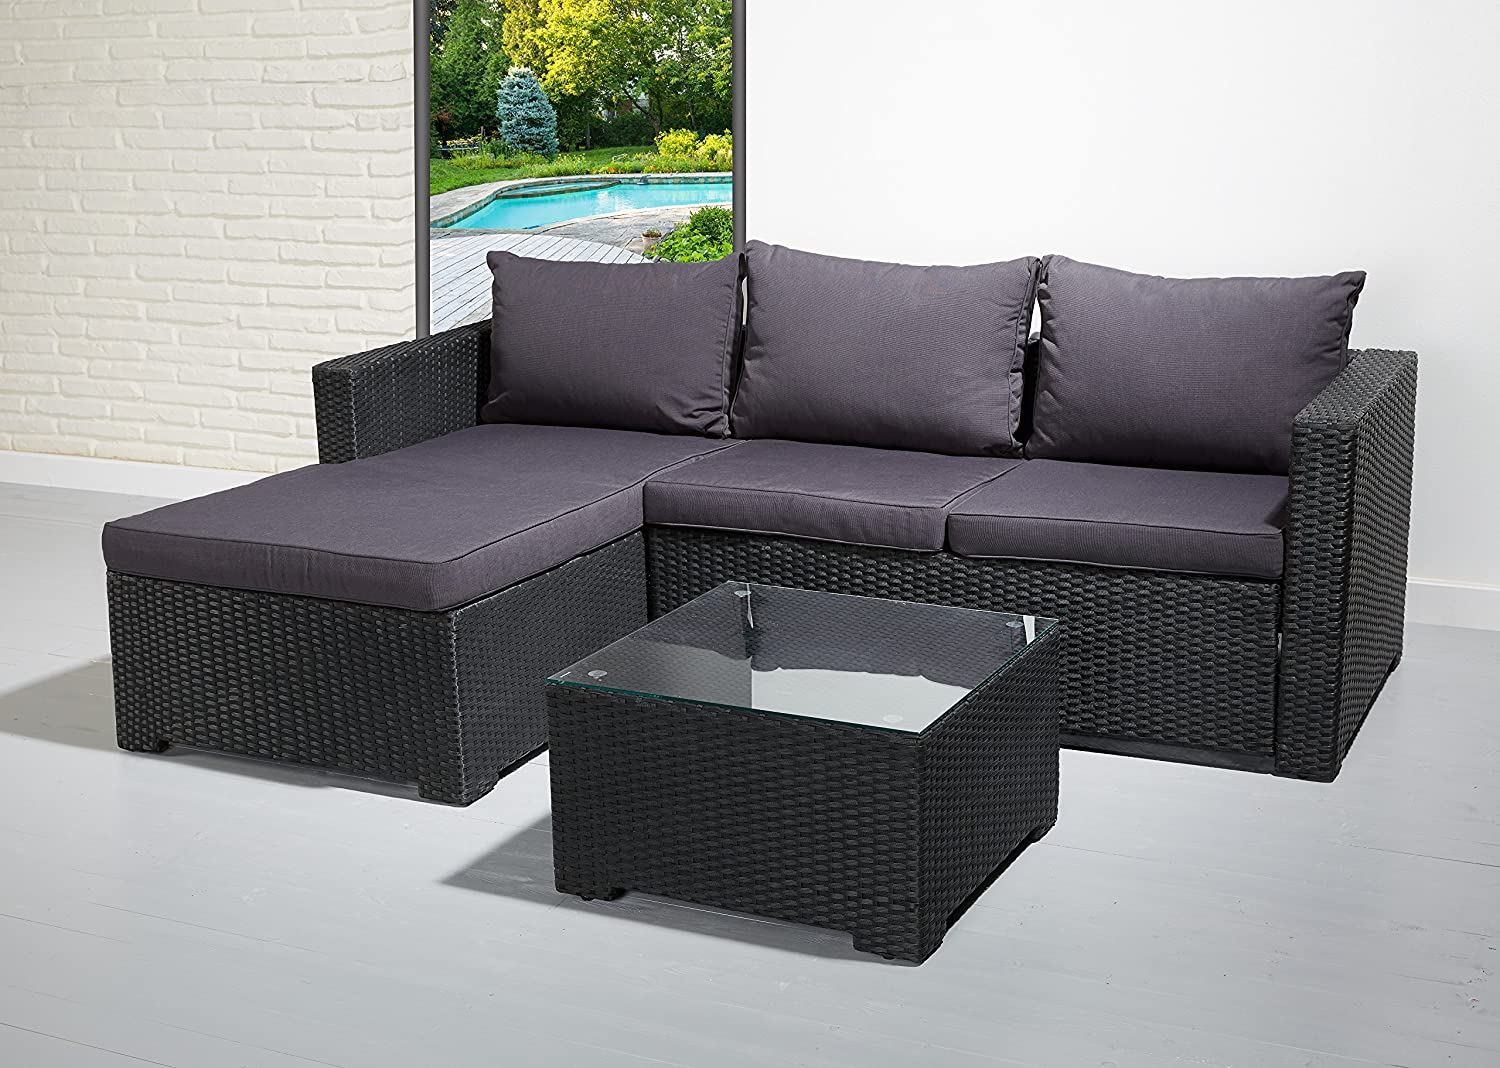 poly rattan essgruppe sitzgruppe schwarz lounge set. Black Bedroom Furniture Sets. Home Design Ideas